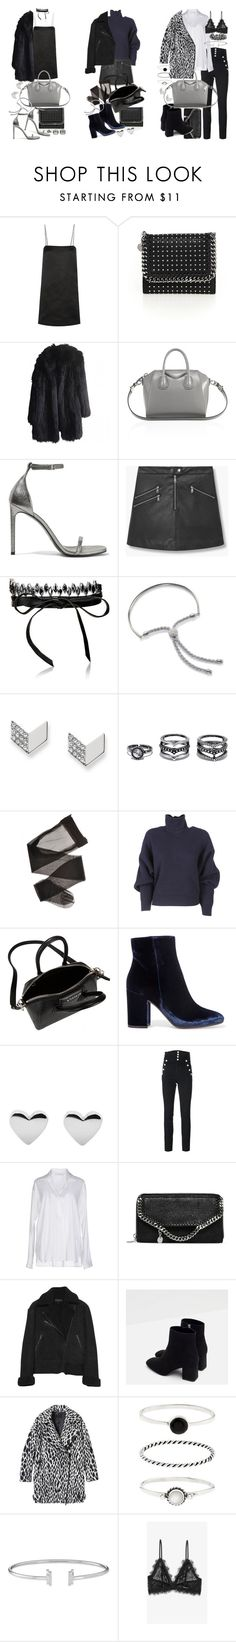 """""""Christmas party outfits"""" by florencia95 ❤ liked on Polyvore featuring The Row, STELLA McCARTNEY, Sonia Rykiel, Givenchy, Yves Saint Laurent, MANGO, Fallon, Monica Vinader, FOSSIL and LULUS"""